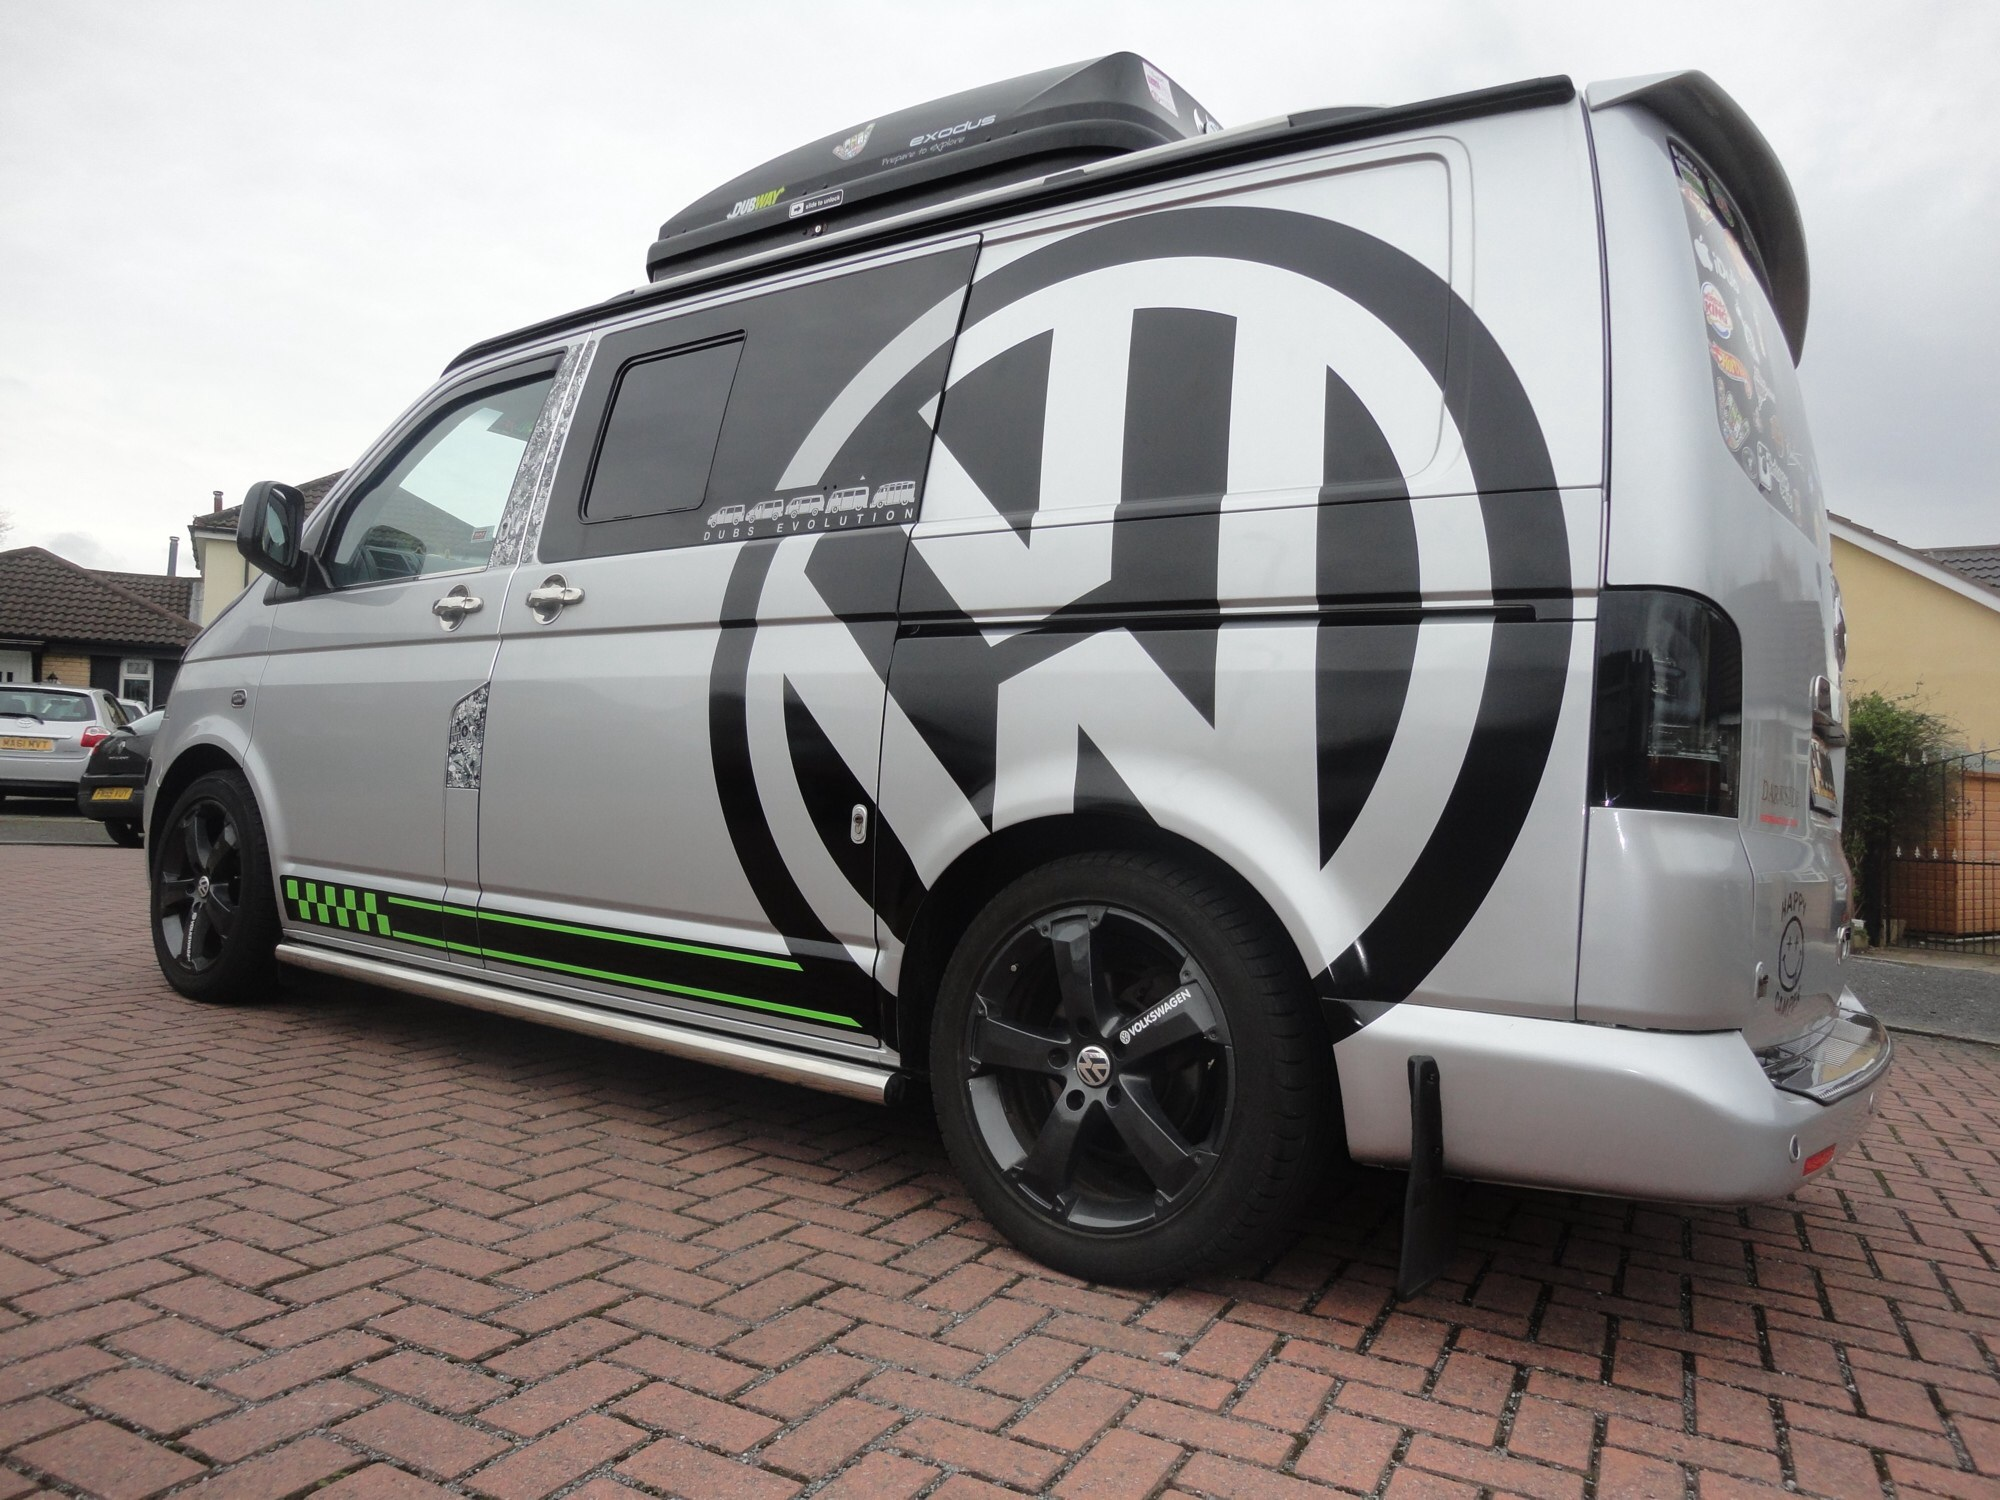 Ill first that for vince as he did ours 2 months back hes a top bloke but thinking im gonna have to change ours now dont like too many vans the